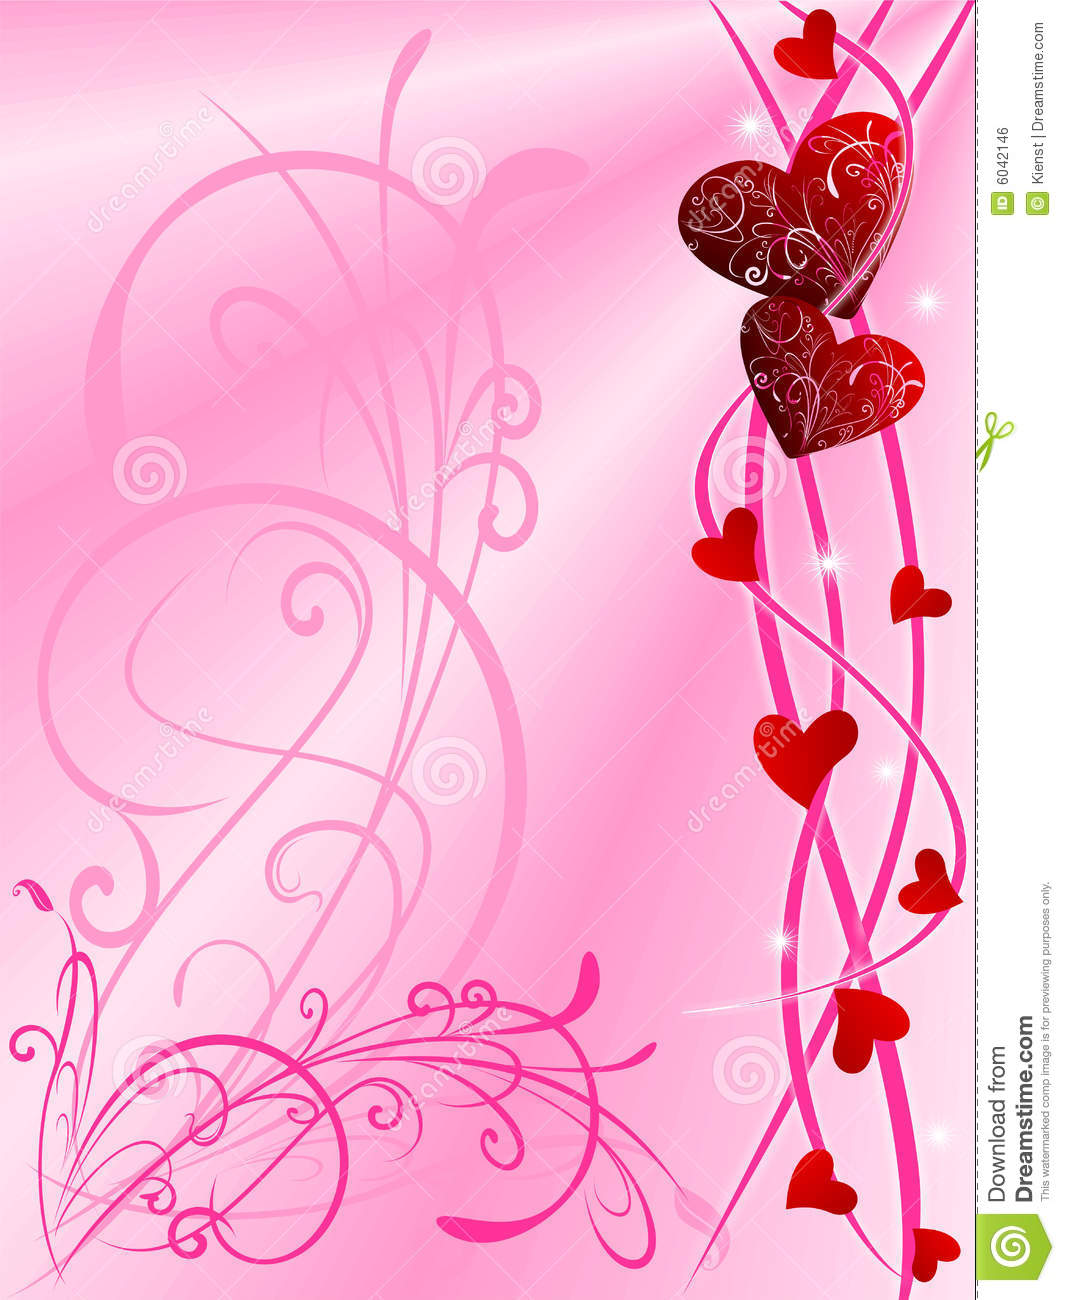 Valentine Day Special 3d Wallpaper Love Background Royalty Free Stock Image Image 6042146